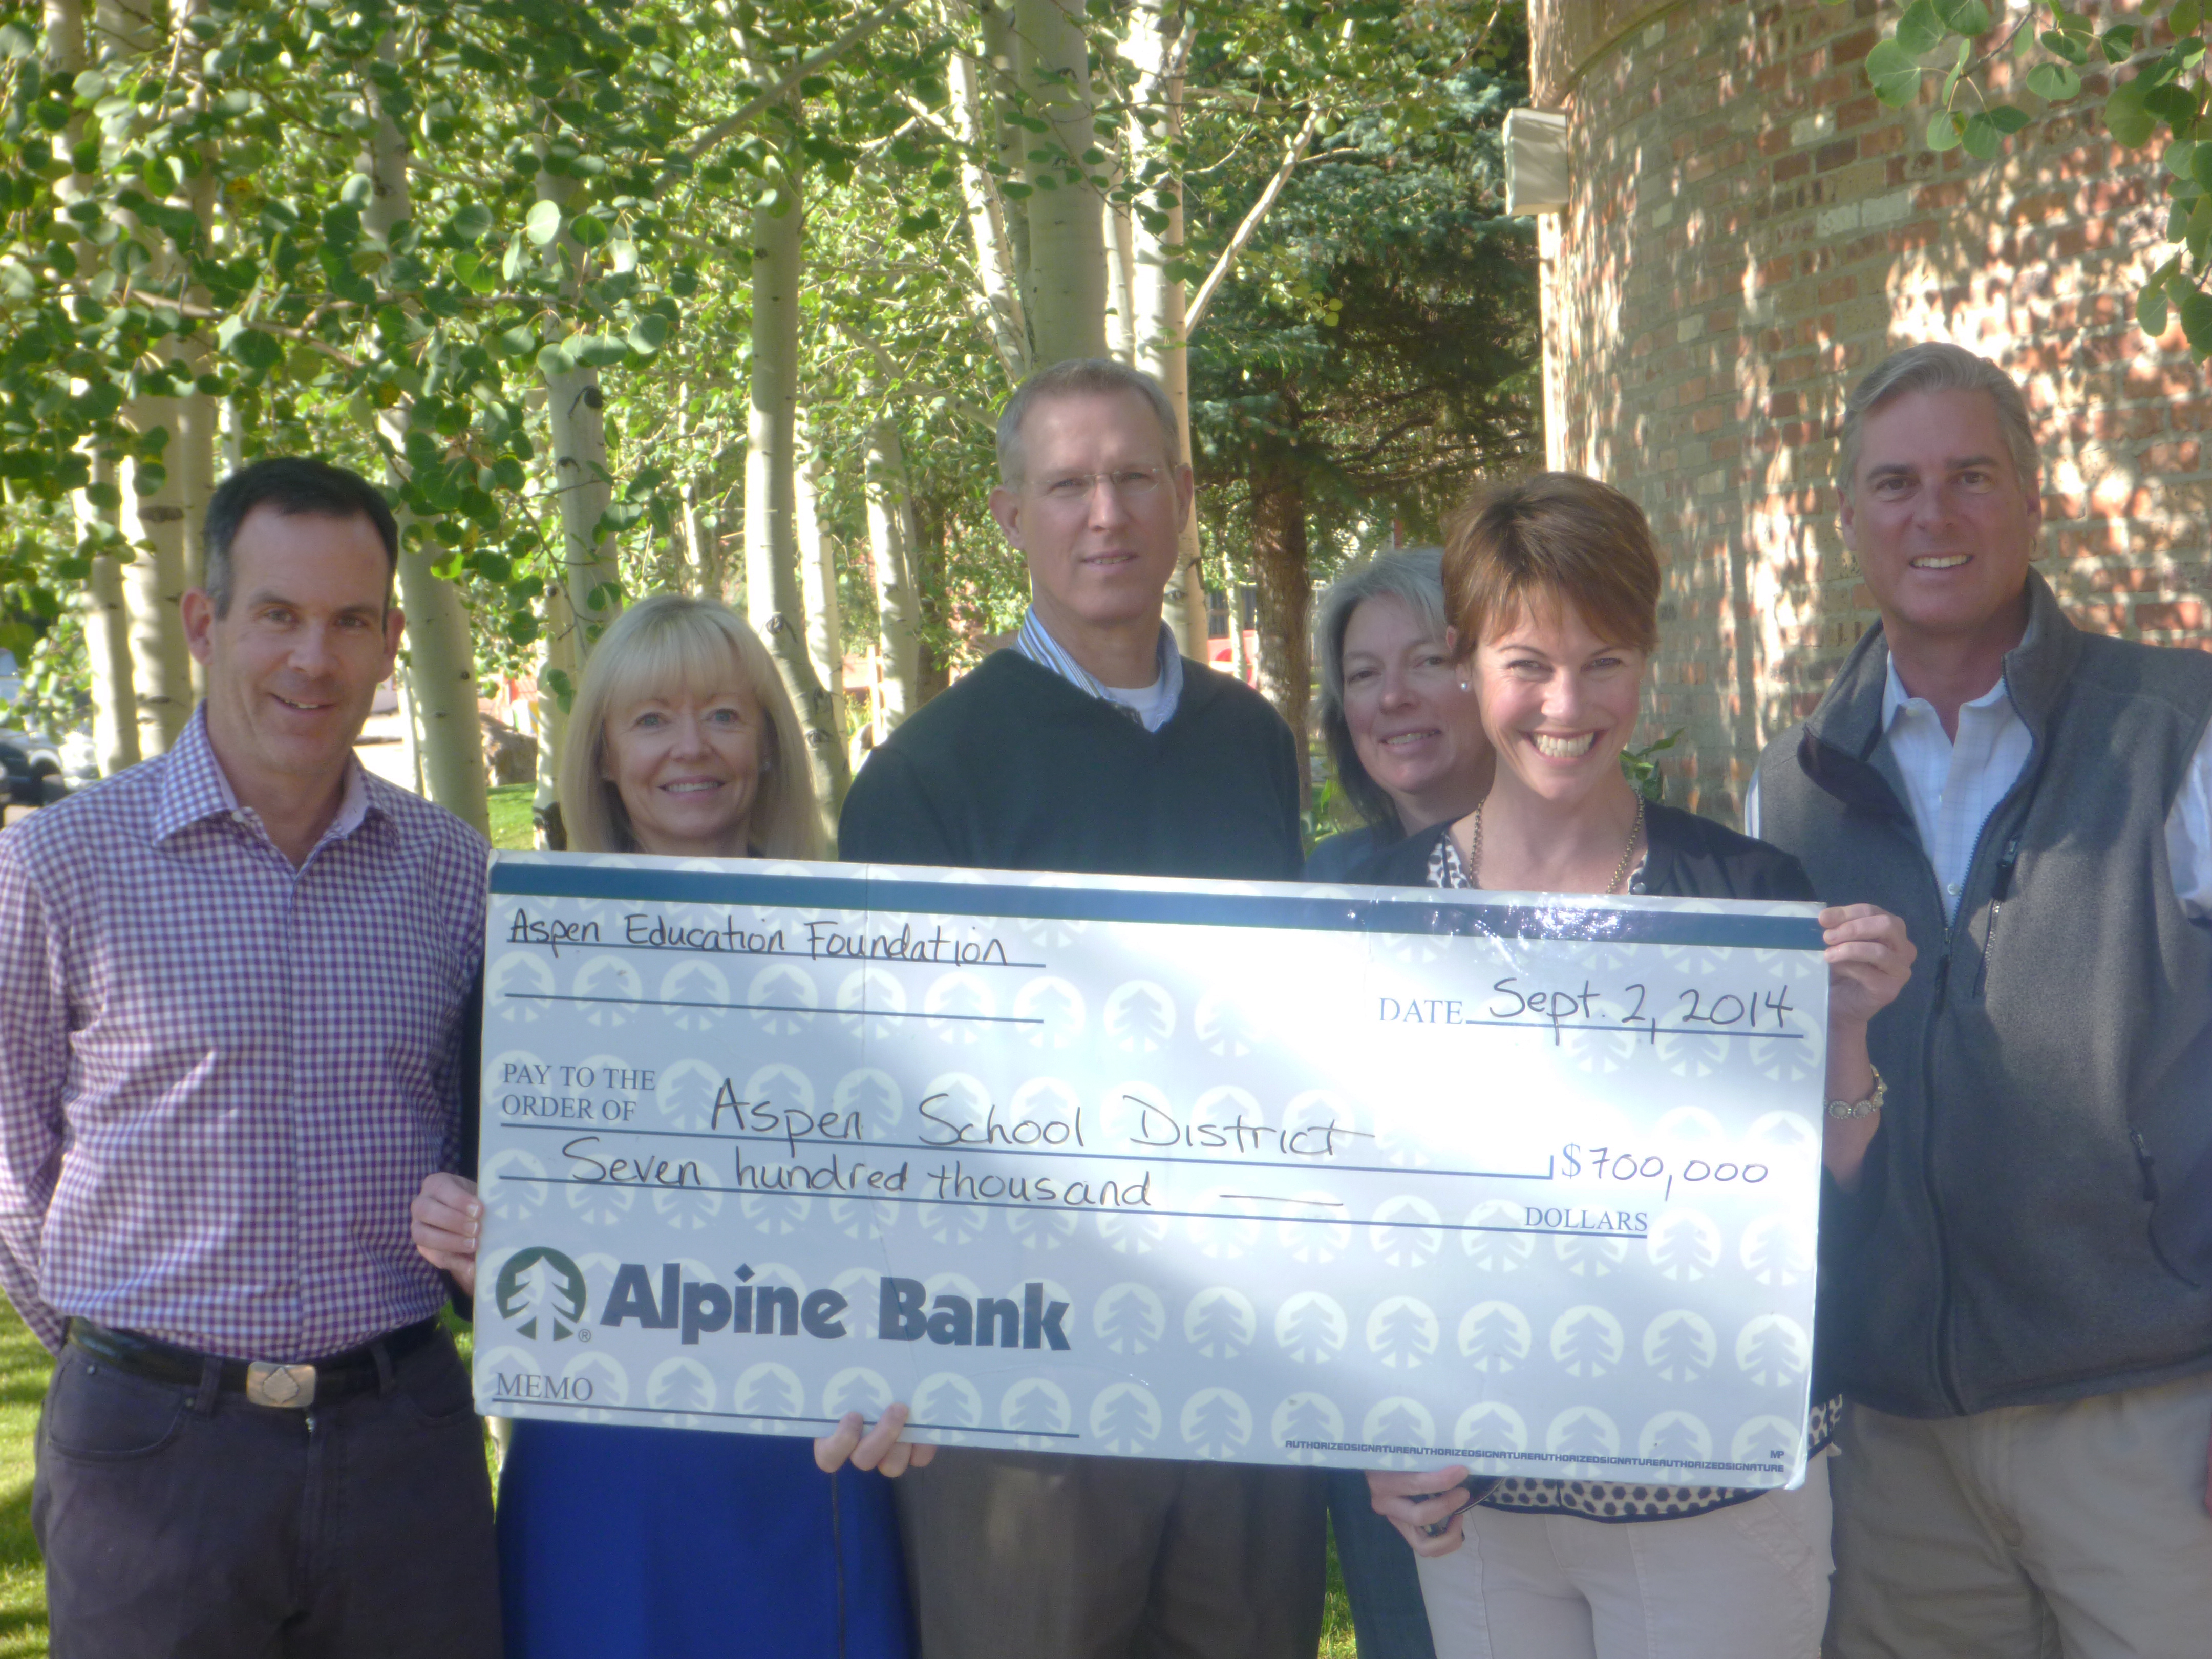 AEF presents check to ASD for $700,000